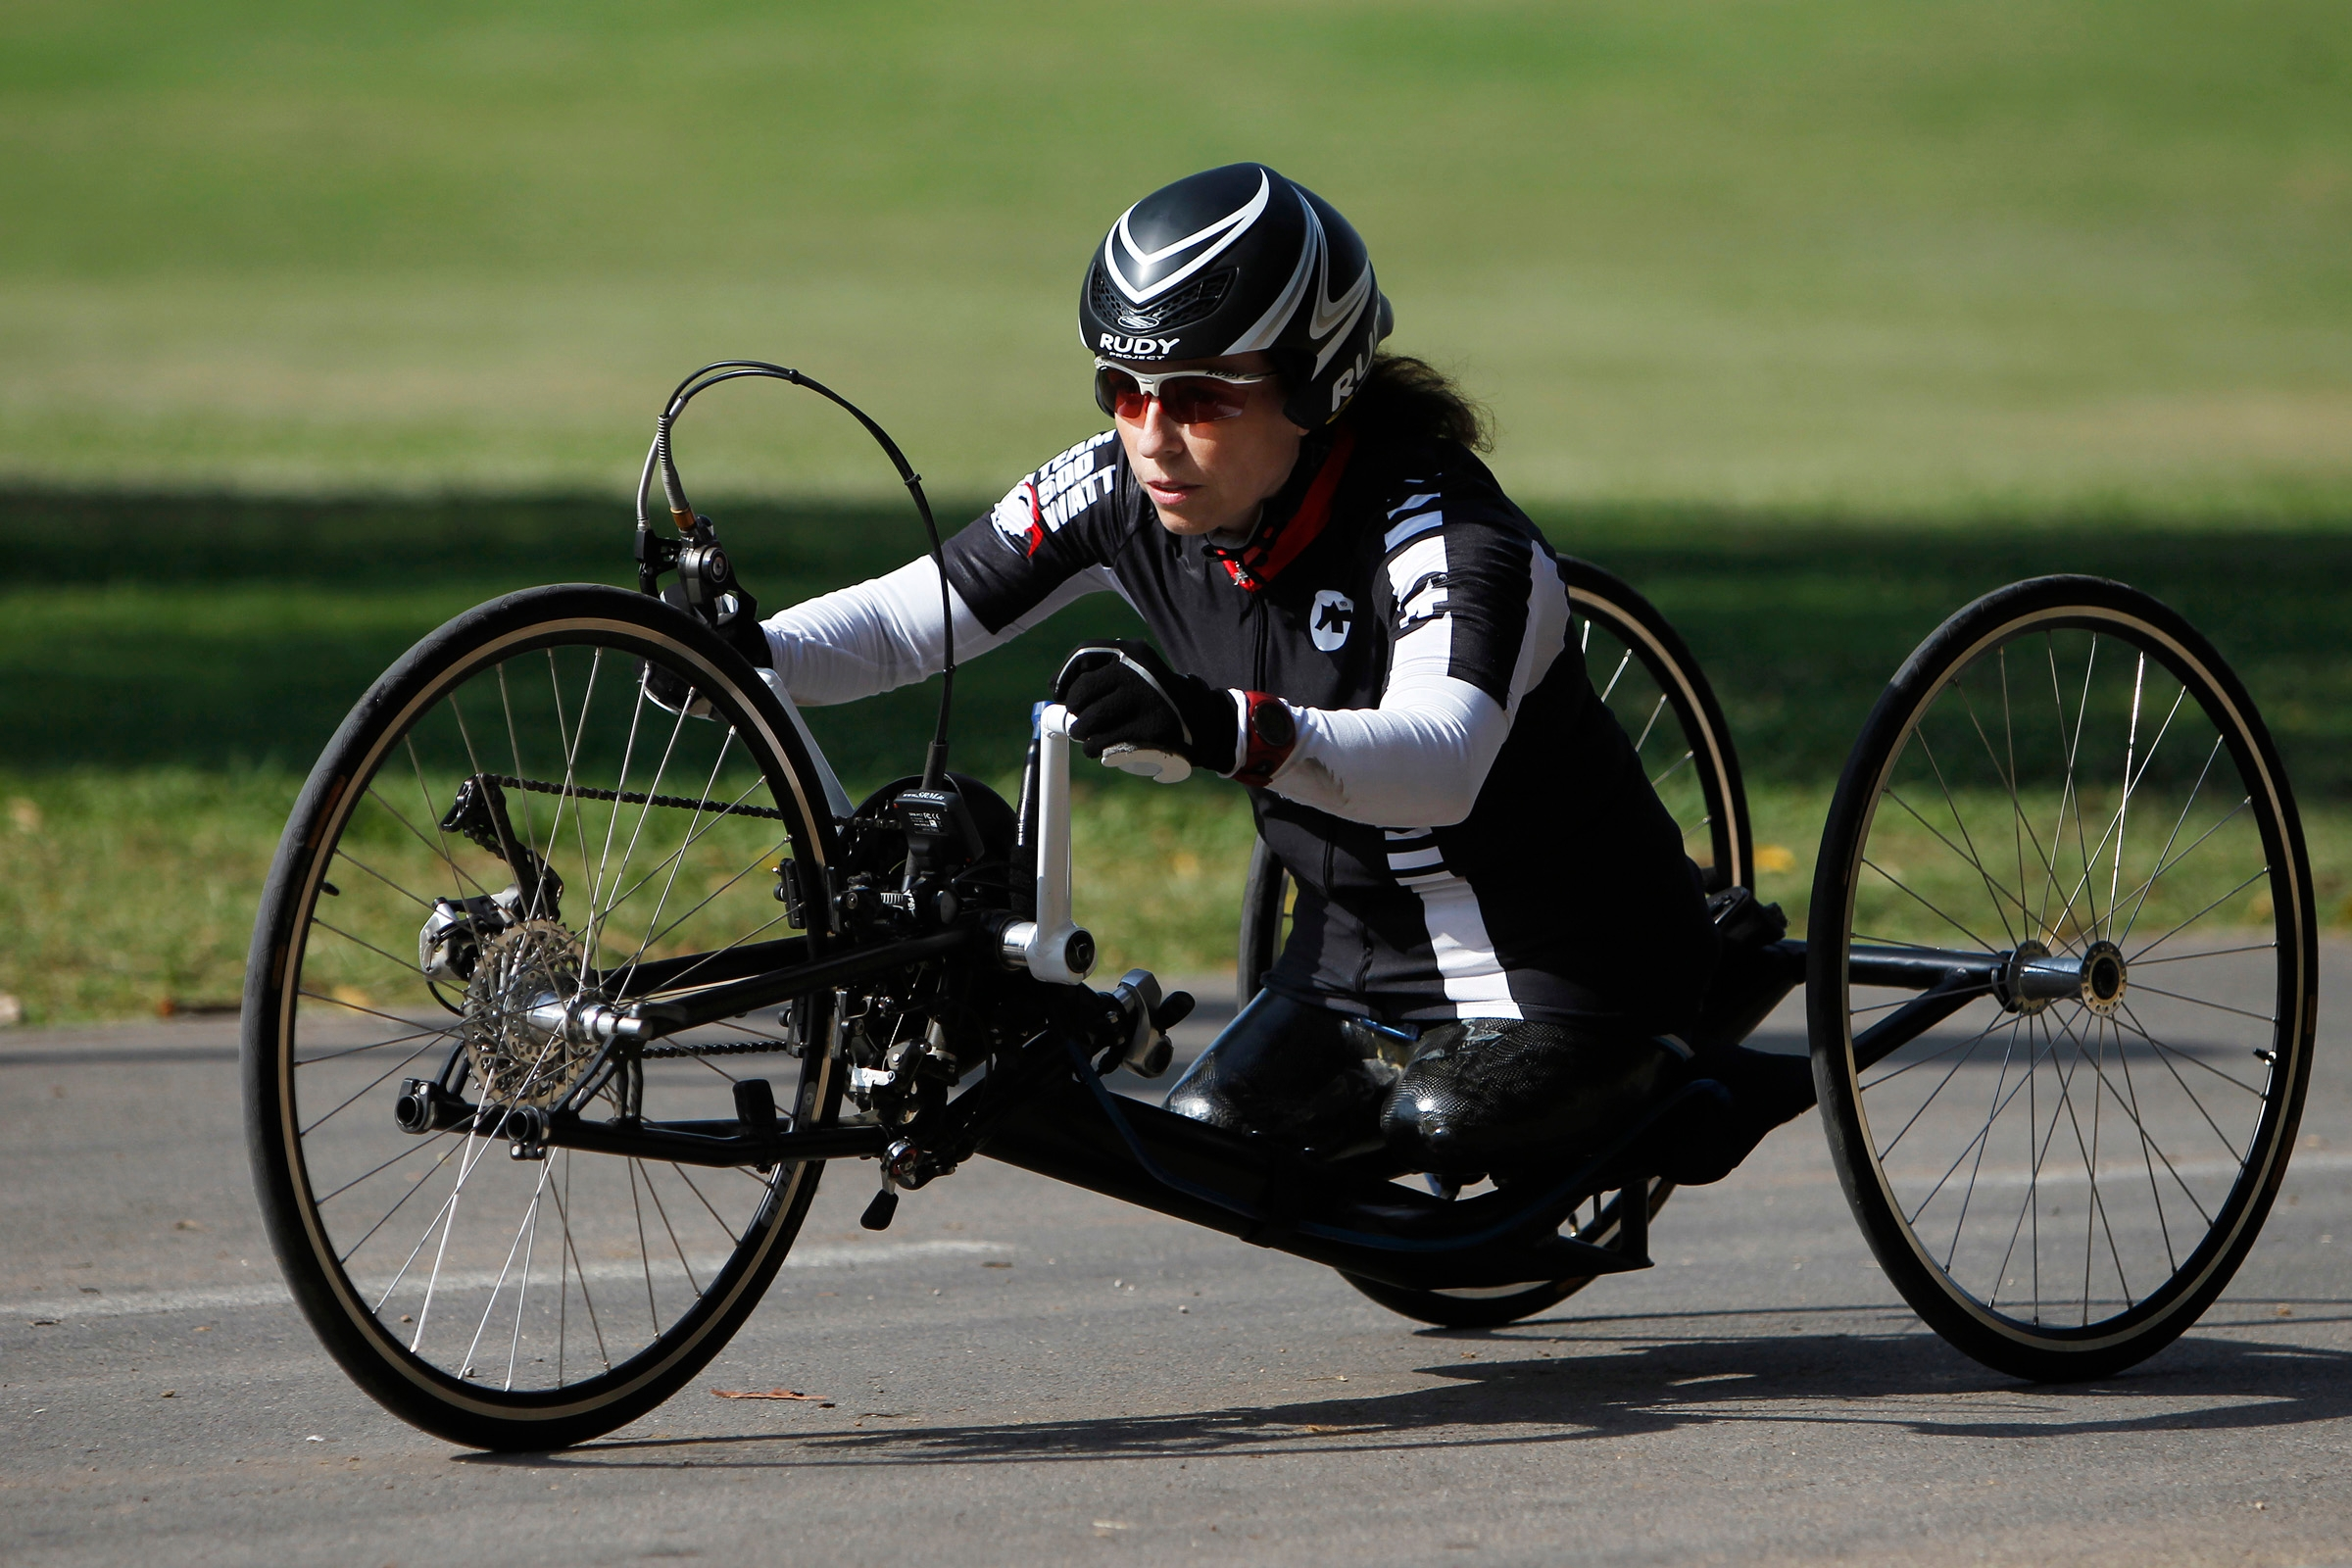 Pascale Bercovitch, an Israeli hand-cyclist who competed in the 2012 London Paralympics, is shooting for a medal in 2016. (Pascale Bercovitch)